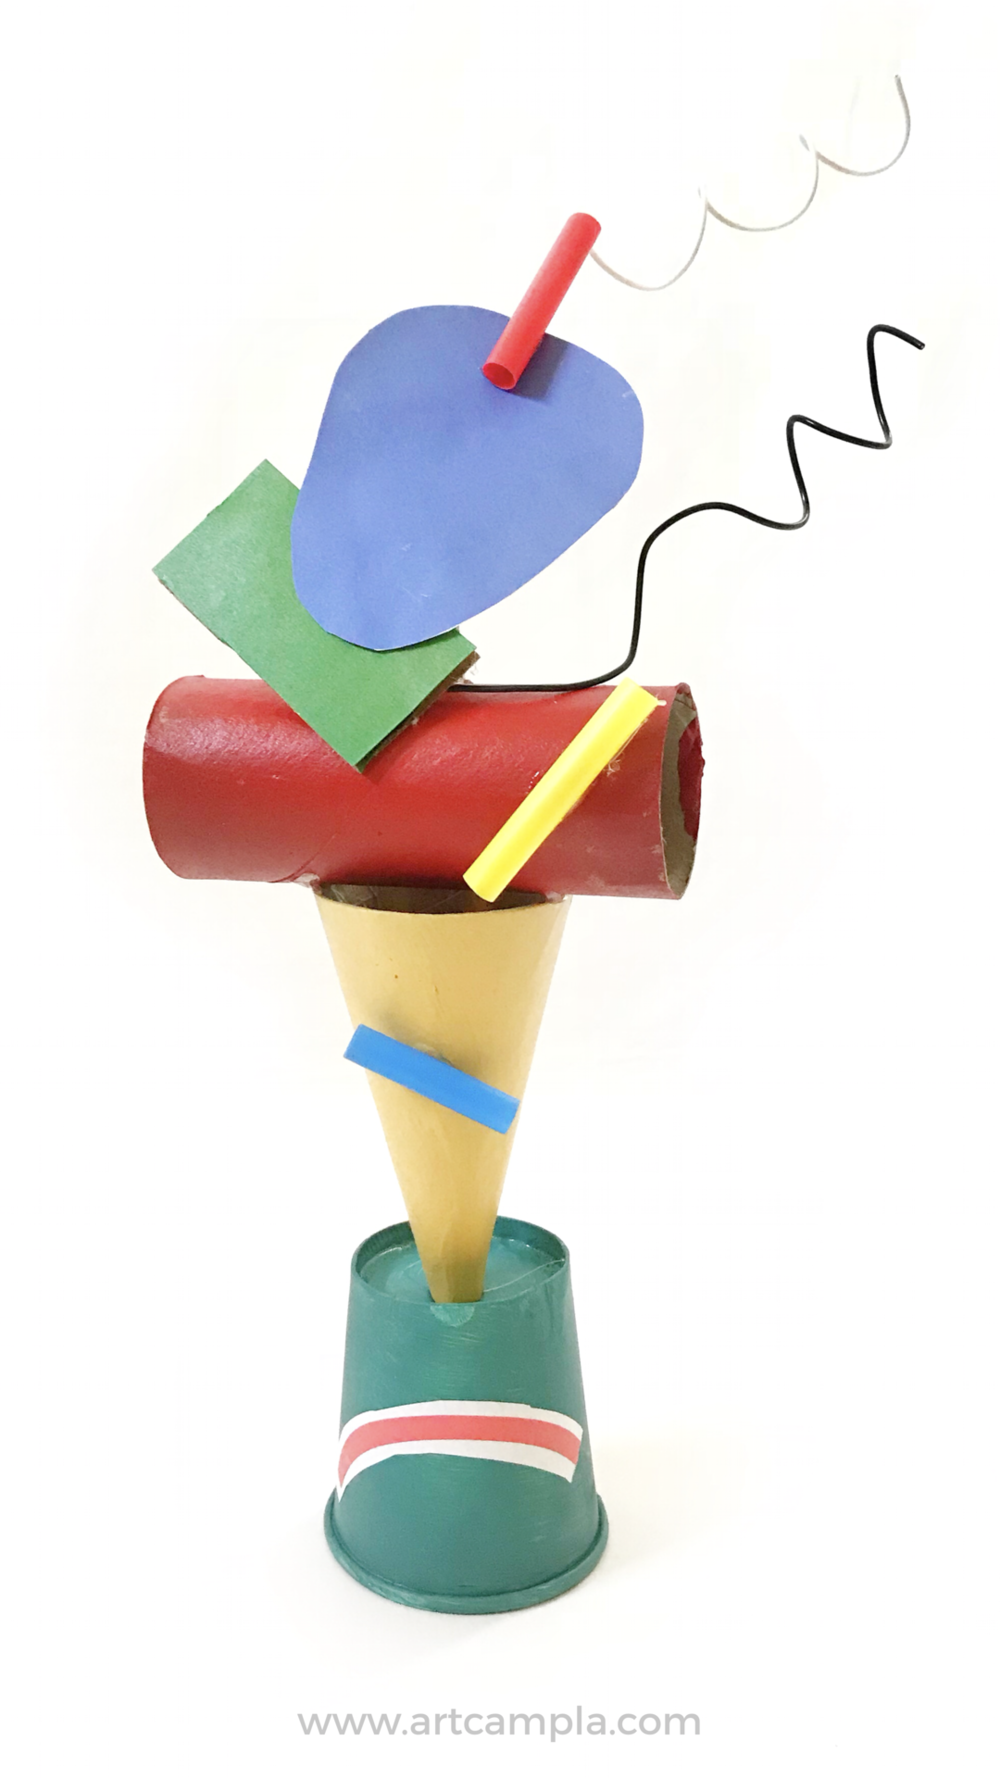 Miró Inspired Sculptures